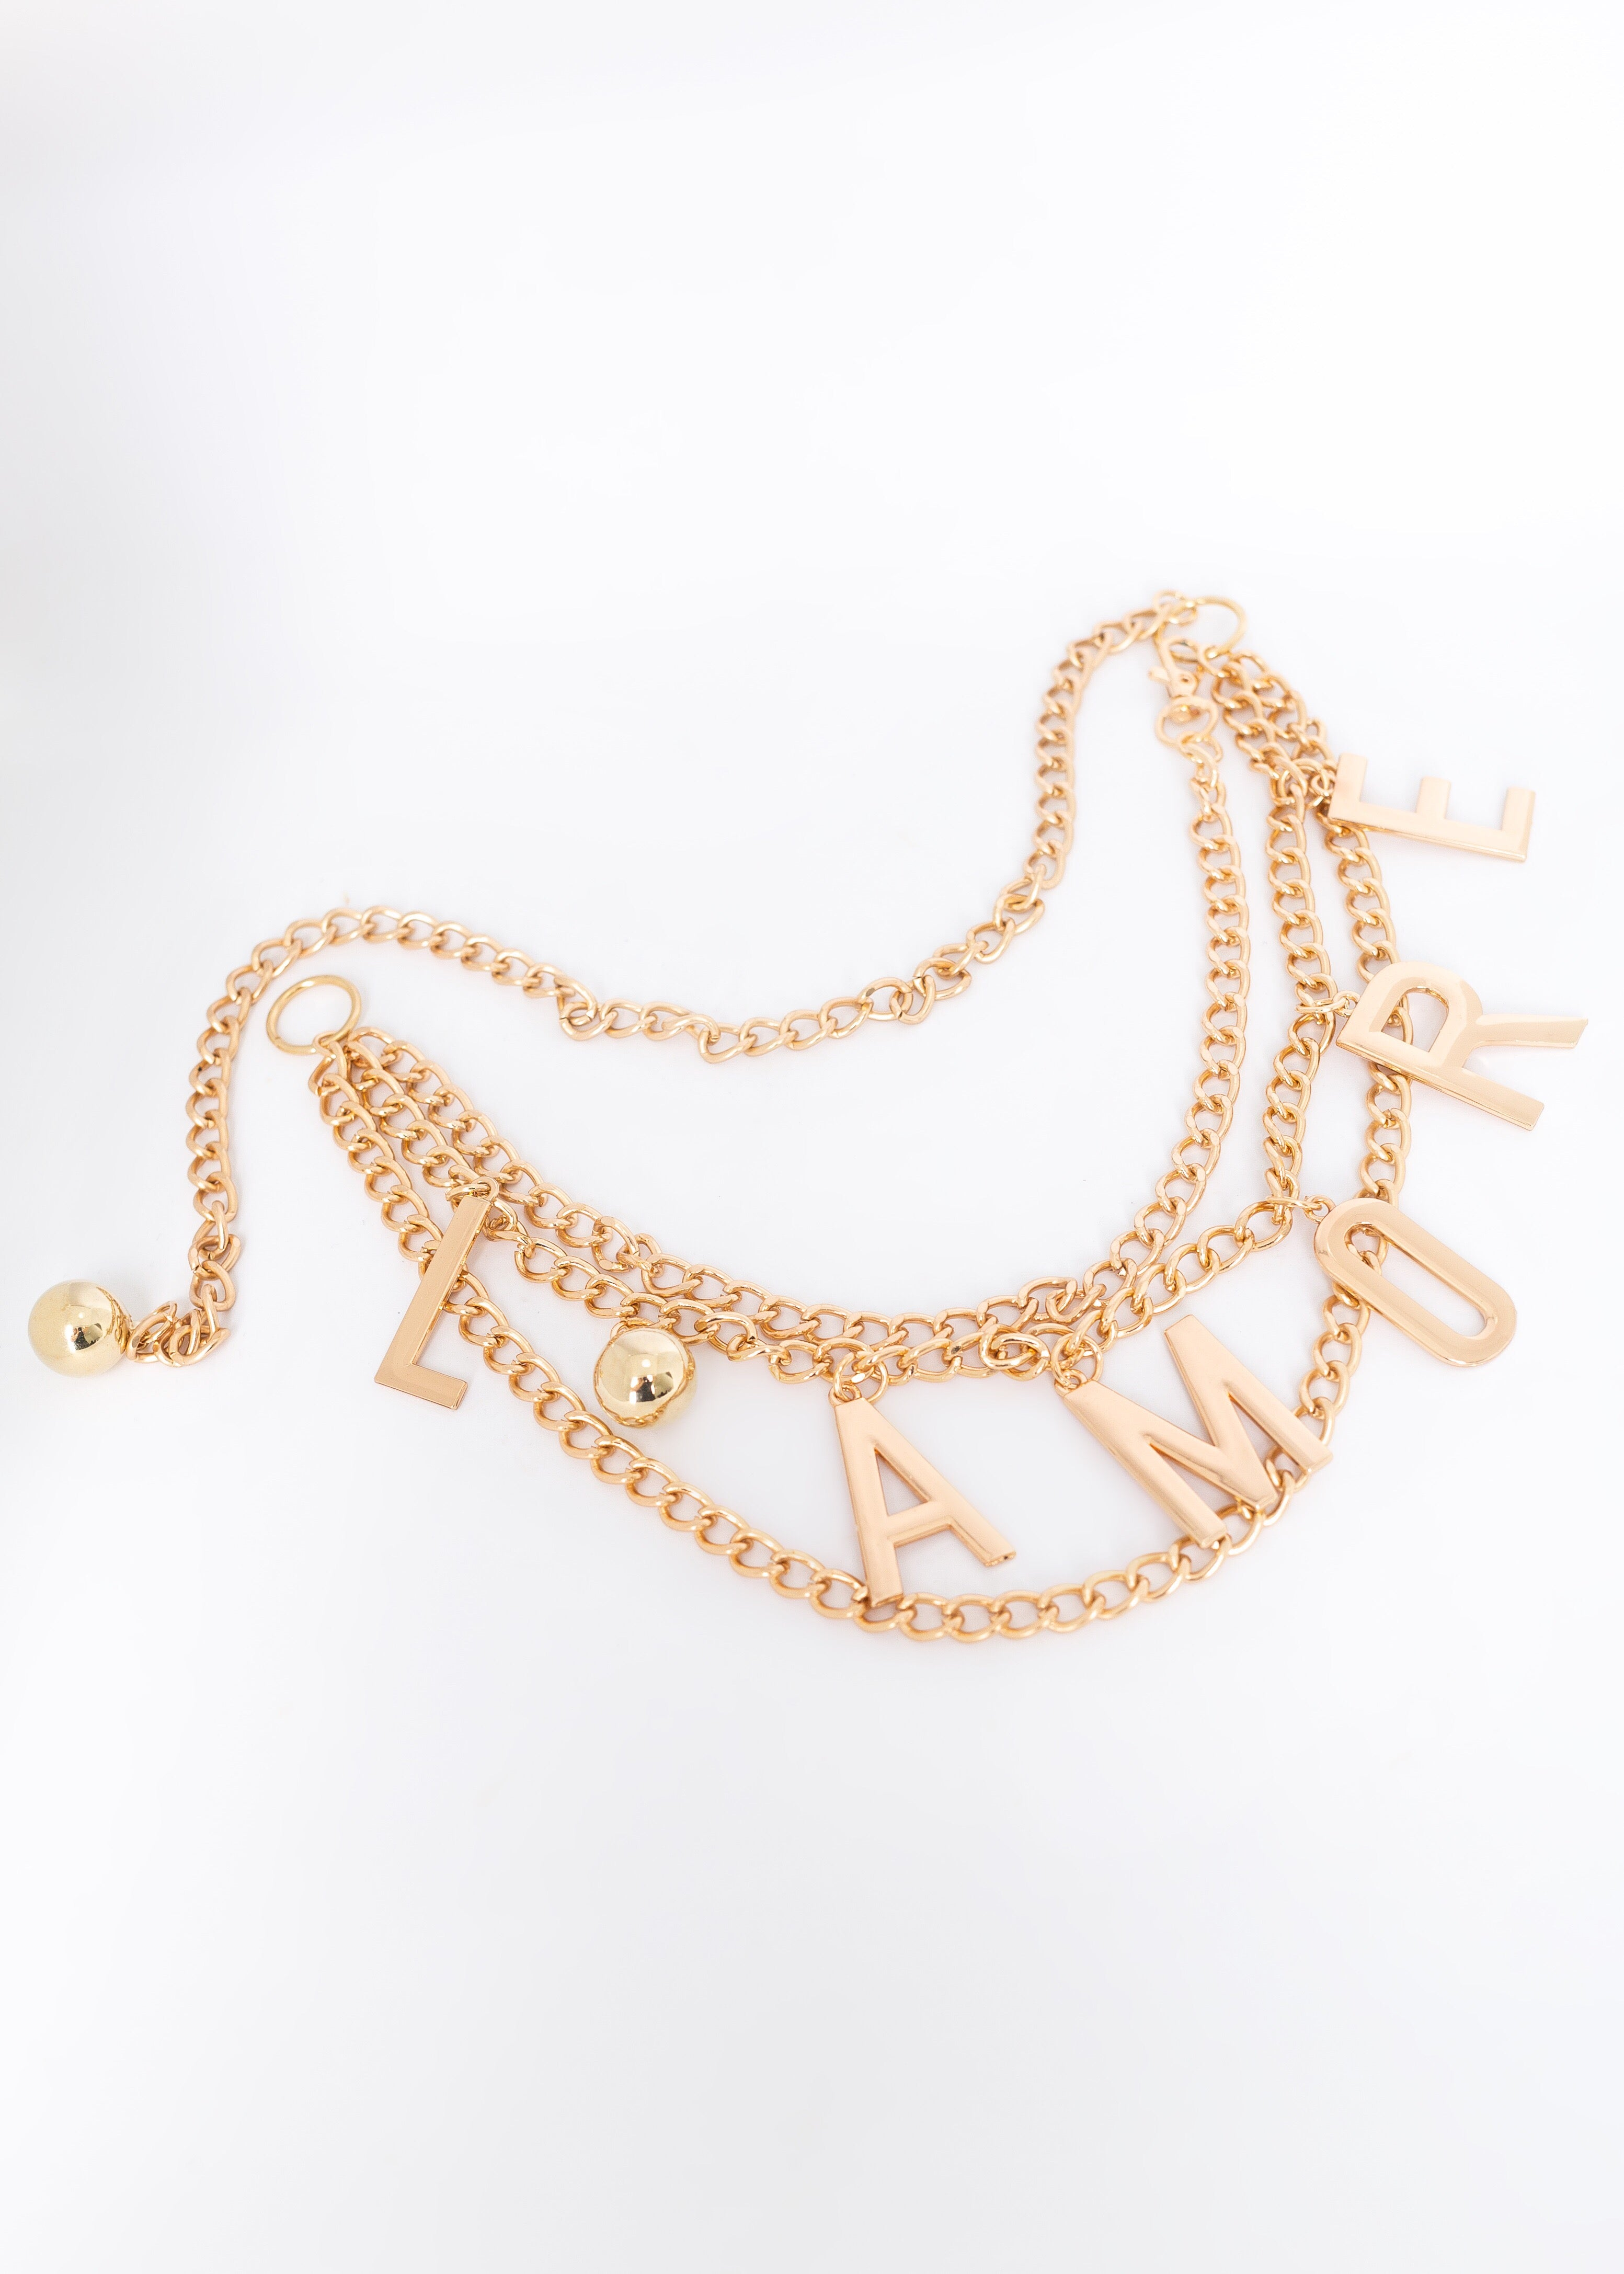 L'amore Hanging Chain Belt